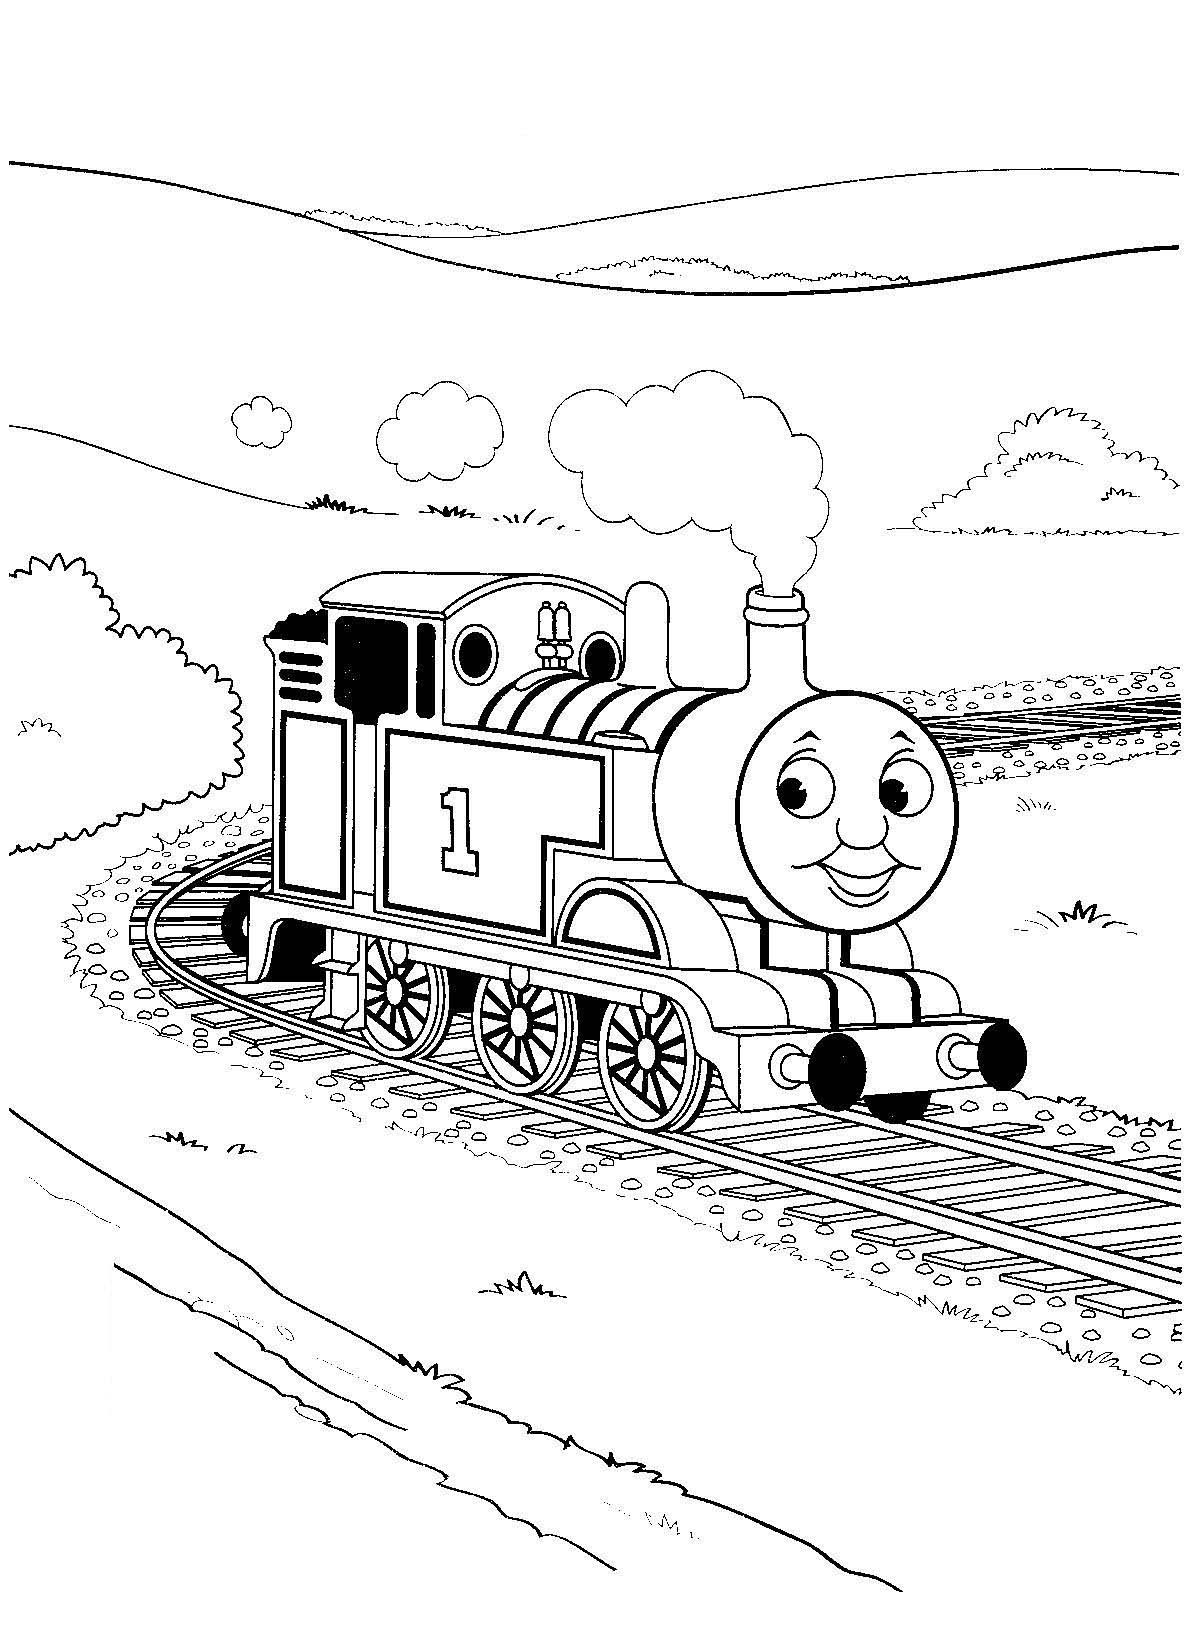 train engine coloring page thomas the tank engine coloring pages gordon thomas the page coloring engine train